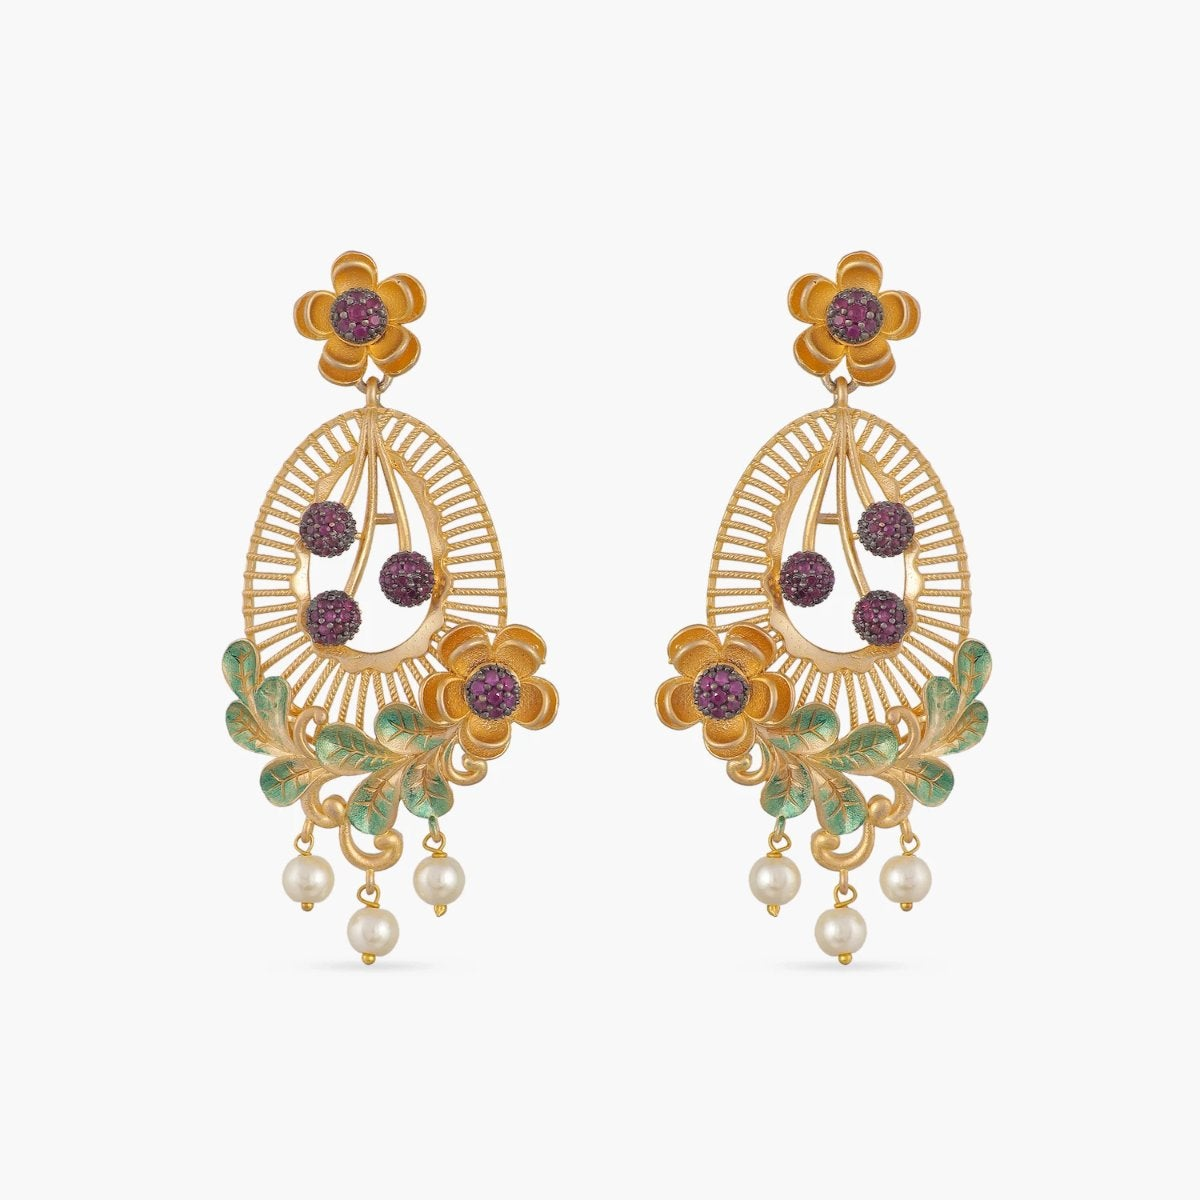 Joyel Antique Earrings